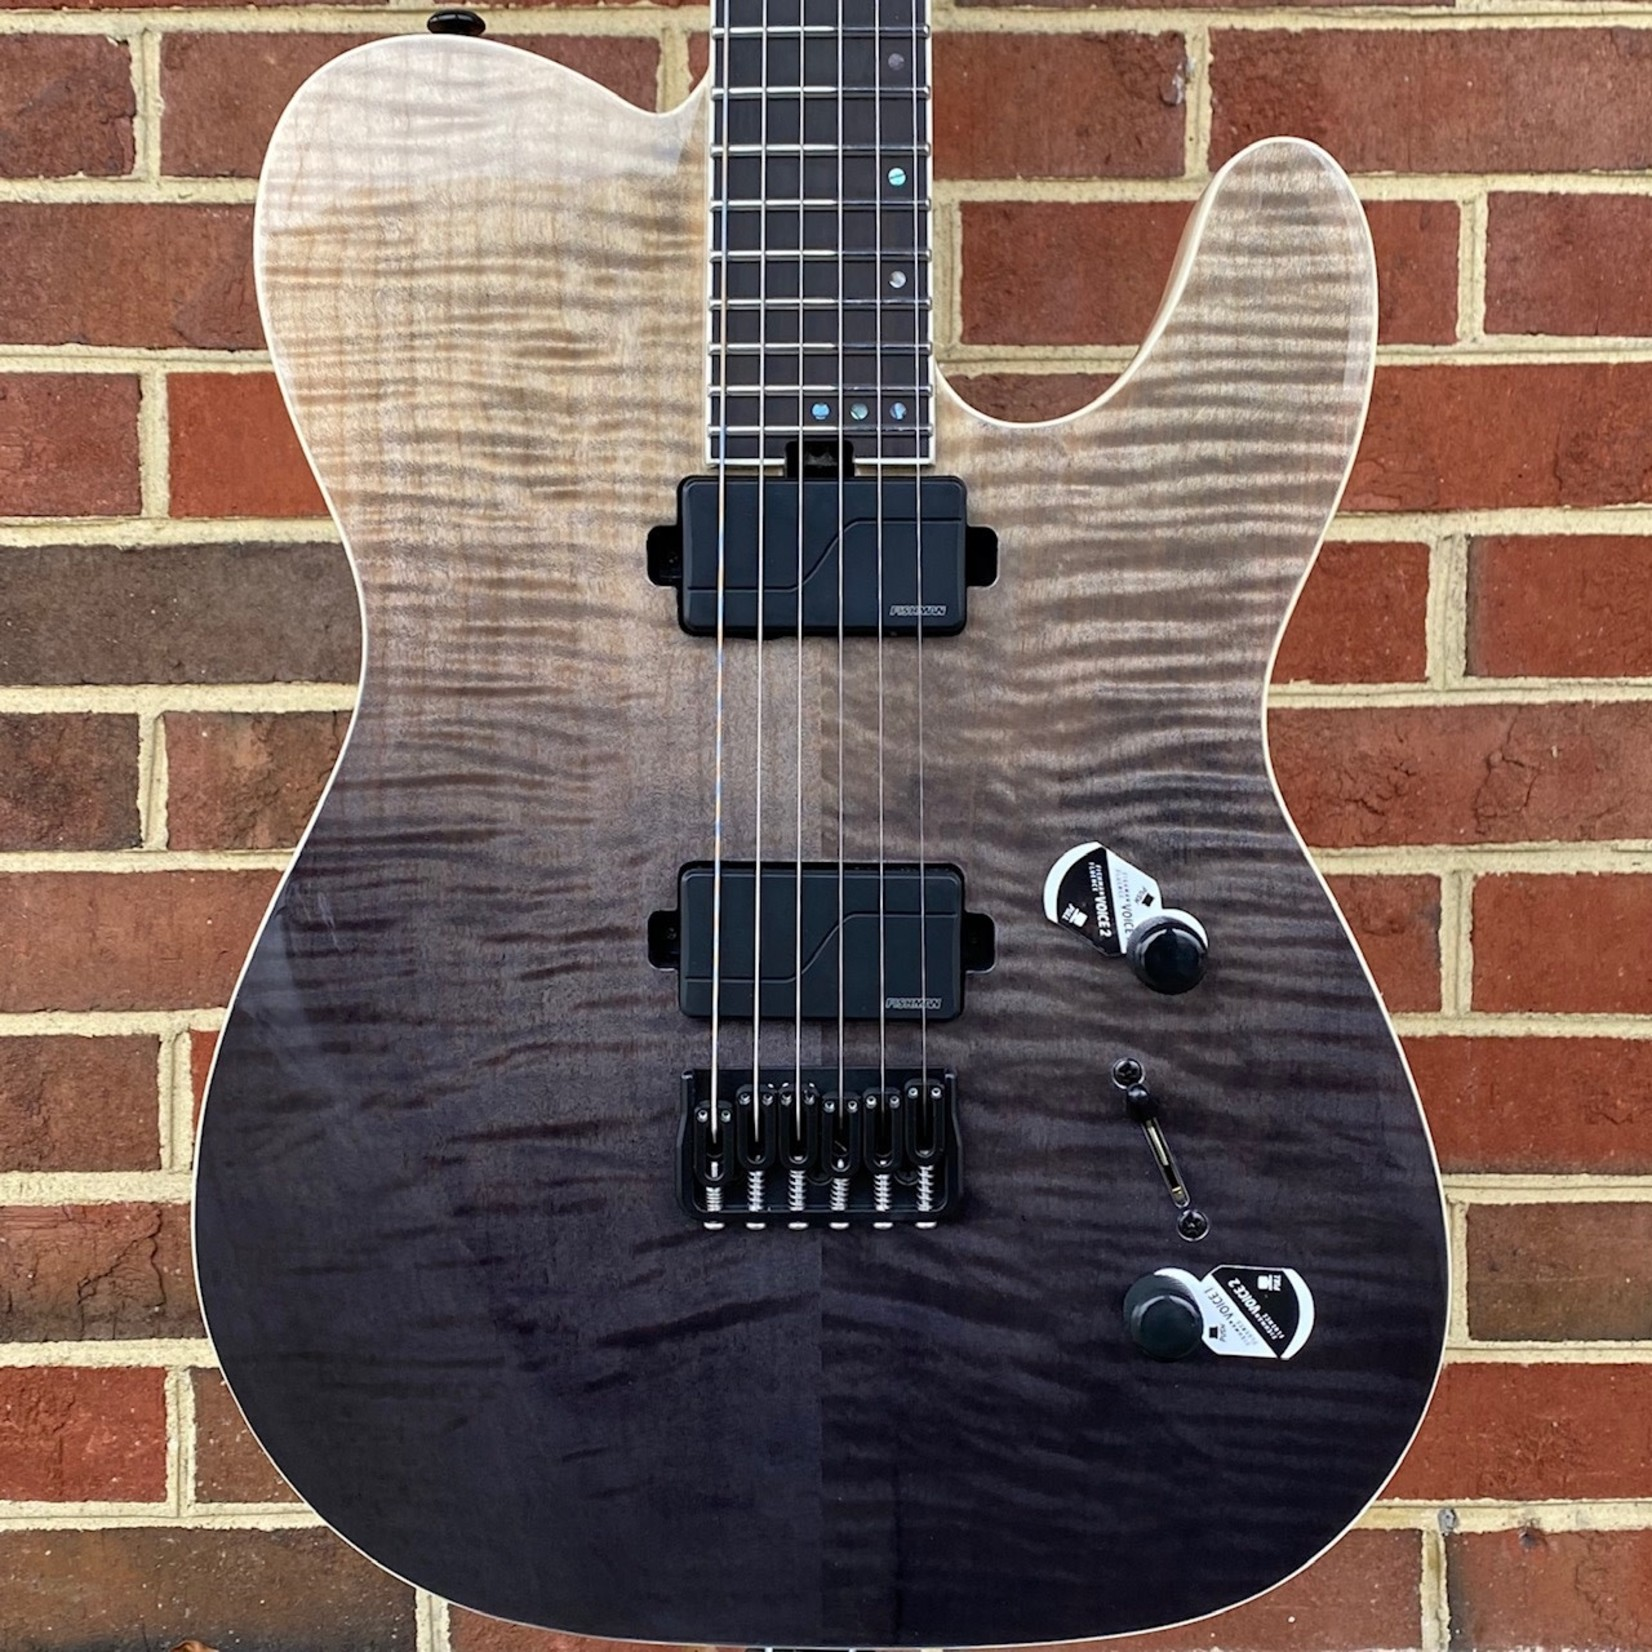 Schecter Guitar Research Schecter PT SLS Elite, Black Fade Burst, Flame Maple Top, Fishman Fluence Modern Pickups, Maple/Walnut/Paduk Multiply Neck, Neck Thru, Swamp Ash Body, Hipshot Hardtail w/ String-Thru Body, Locking Tuners